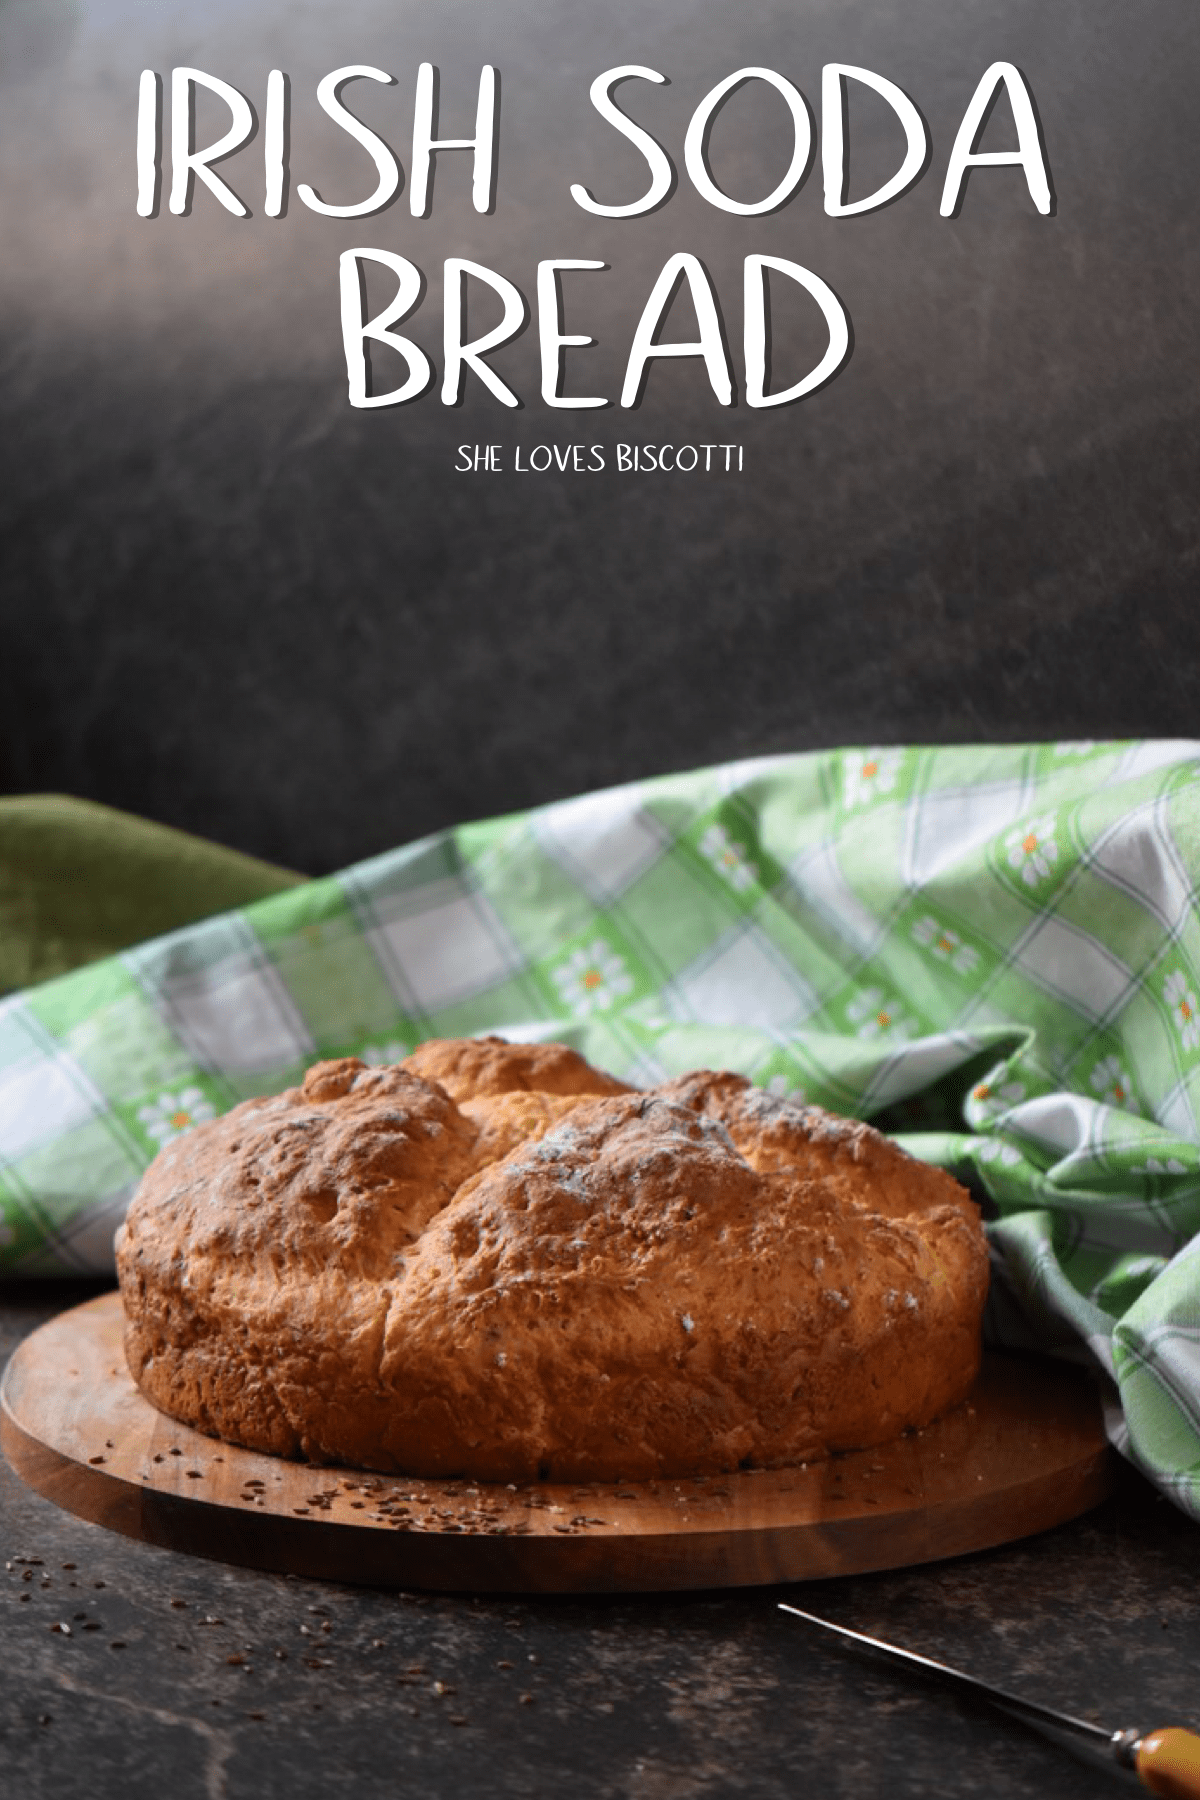 This easy, quick bread recipe will provide you with a tasty and thick crusted Irish soda bread.In the short amount of time it takes for your oven to preheat, you can whip up the batter for this Non Traditional Irish Soda Bread. #shelovesbiscotti #irishsodabread #sodabread #stpatricksrecipe #irishrecipe #quickbread #caraway #march17